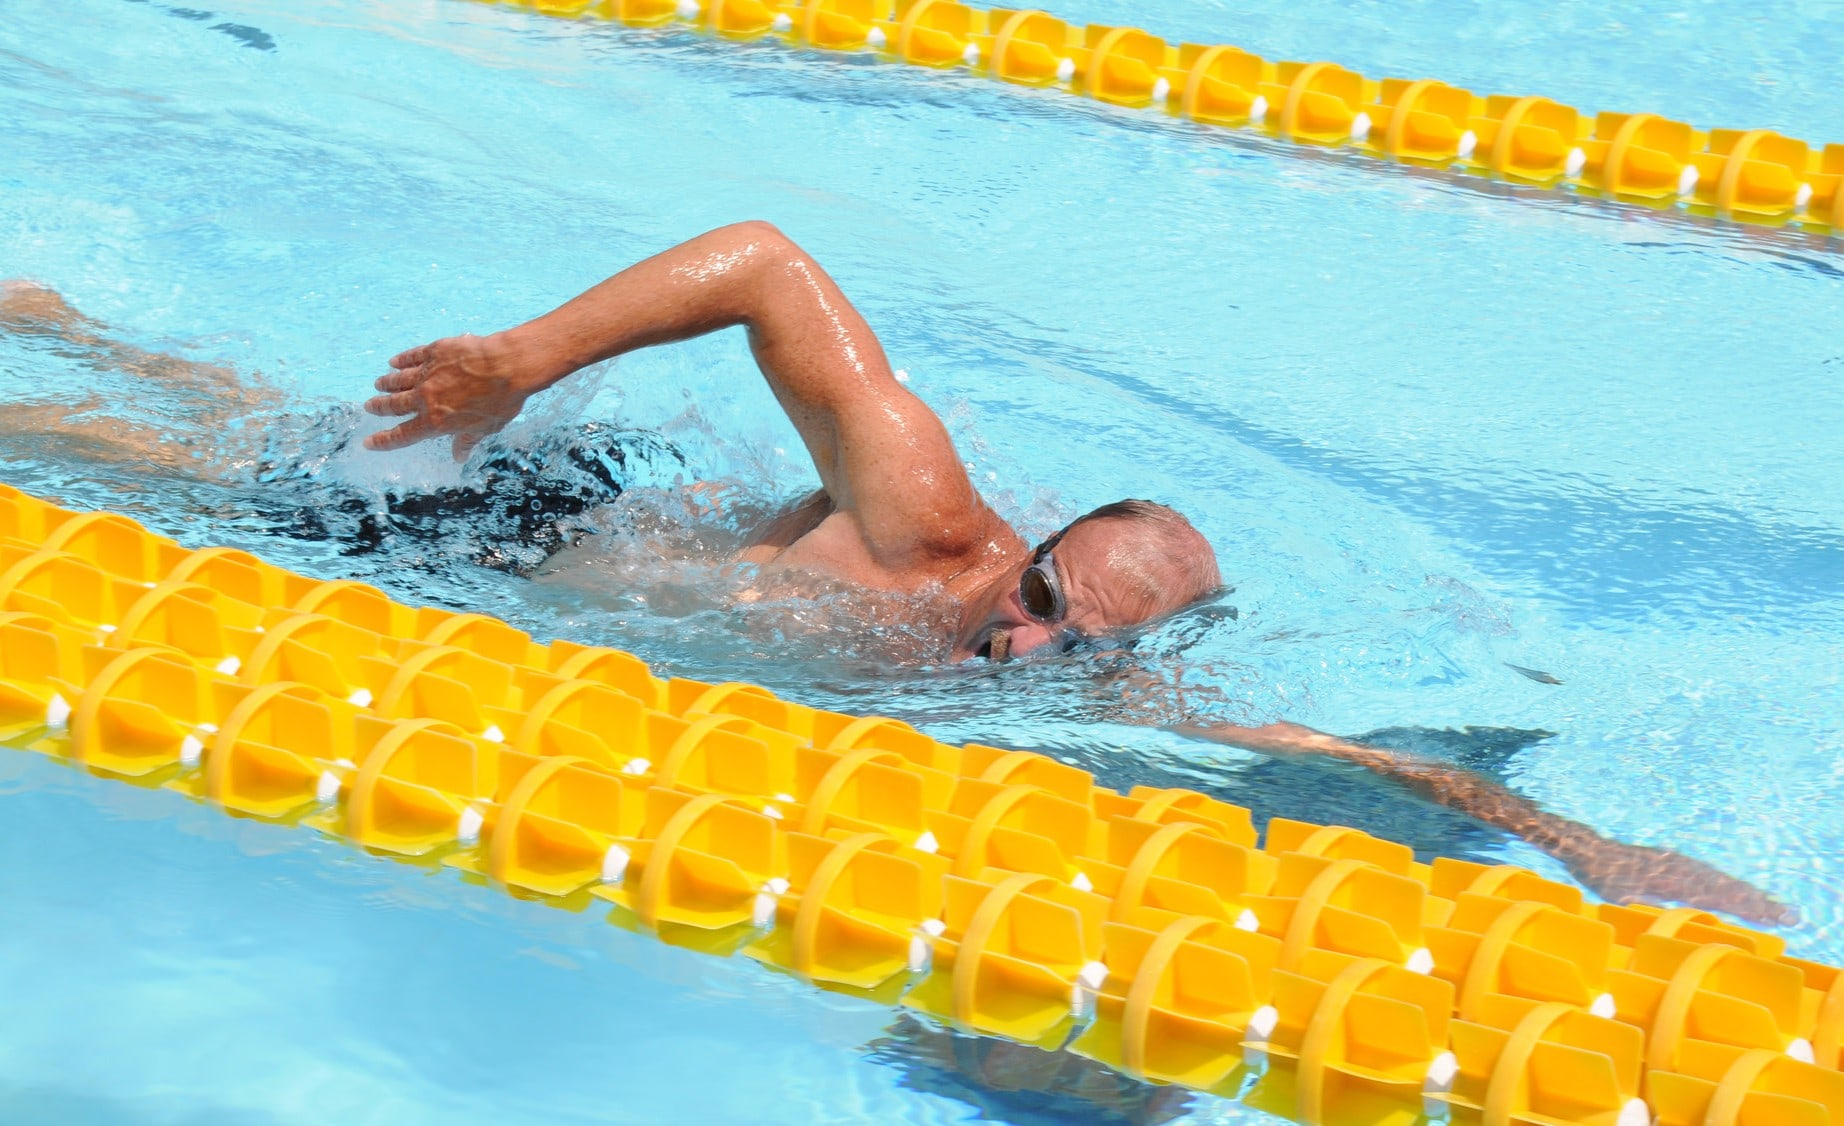 aquatic therapy, spine - person swimming in a lane